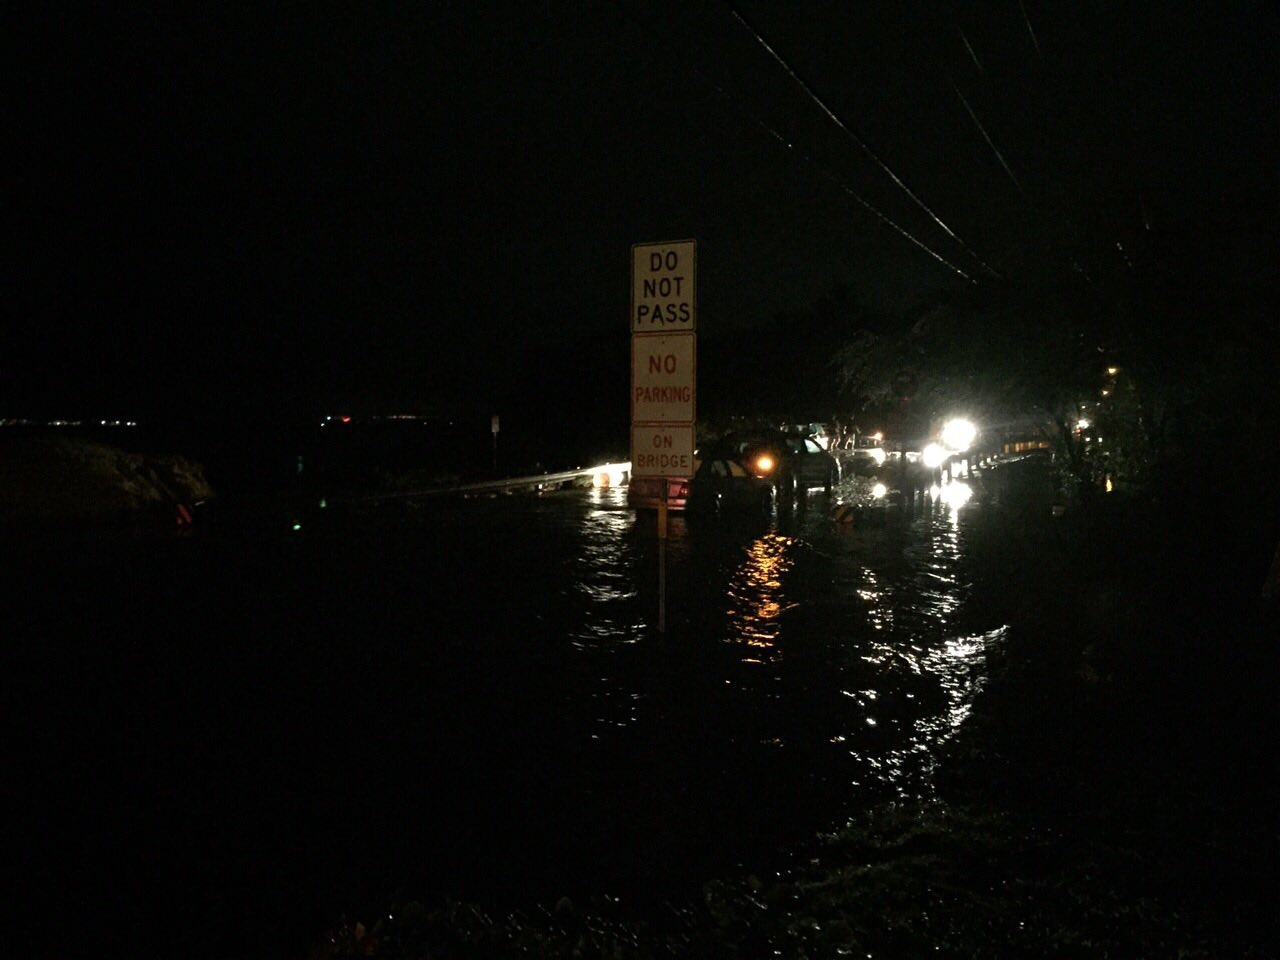 Kīhei flooding, 12.11.16. Photo courtesy: Tina S.